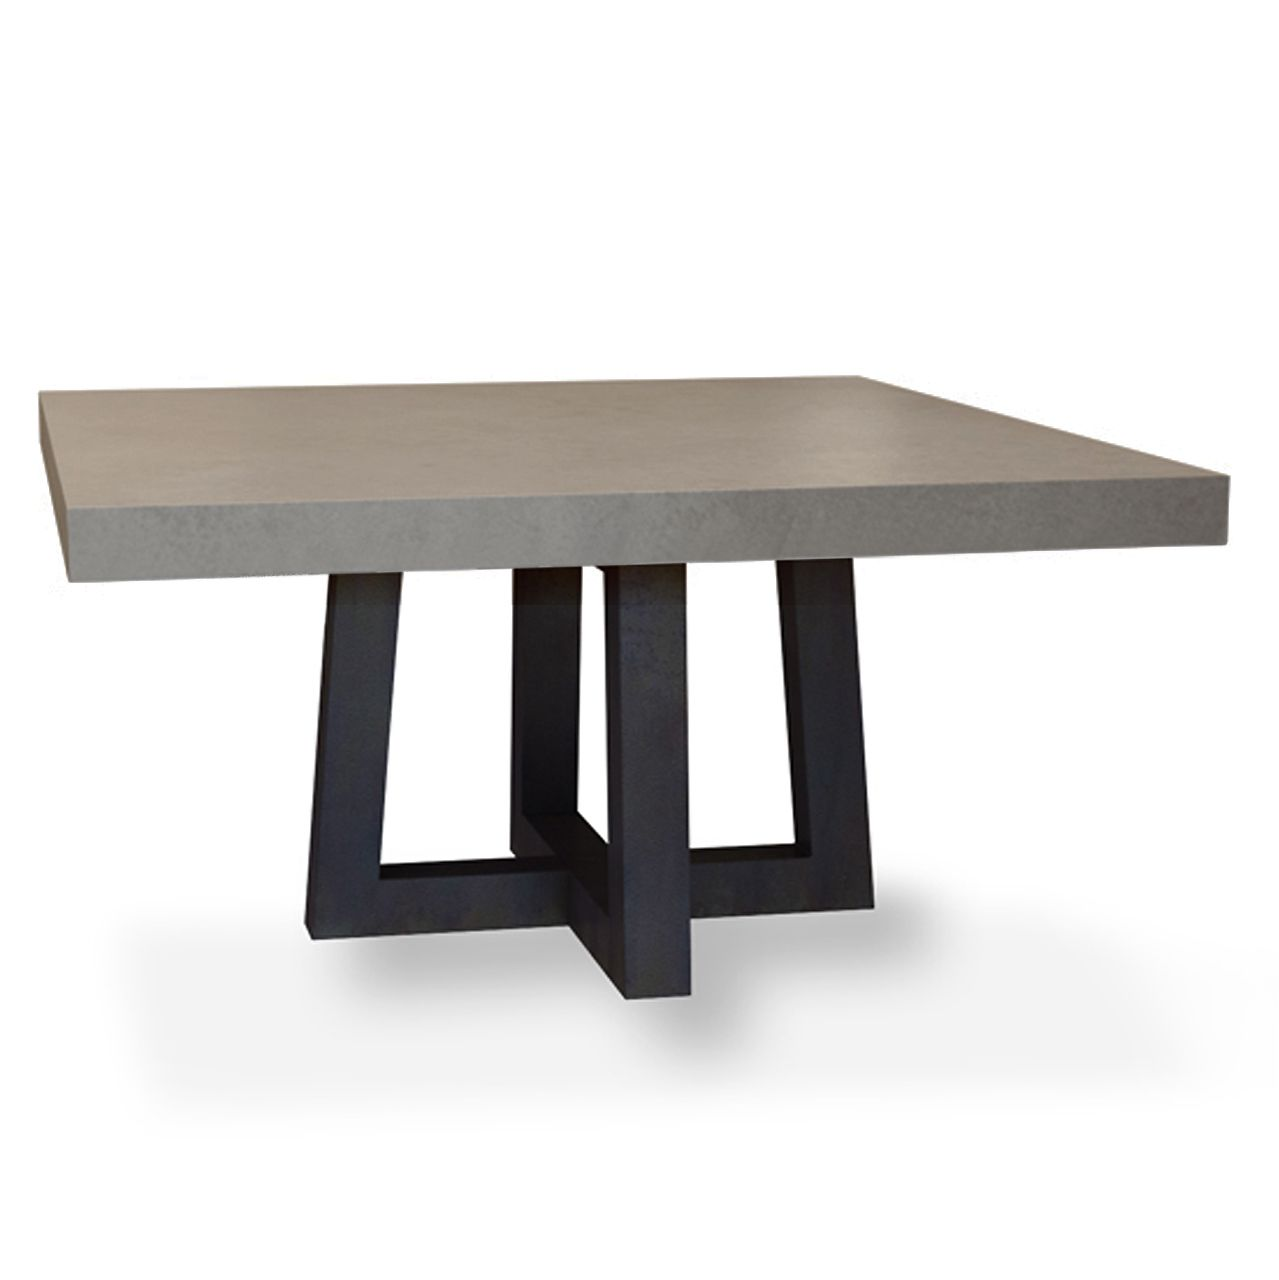 Torre Square Concrete Dining Table Concrete Dining Table Square